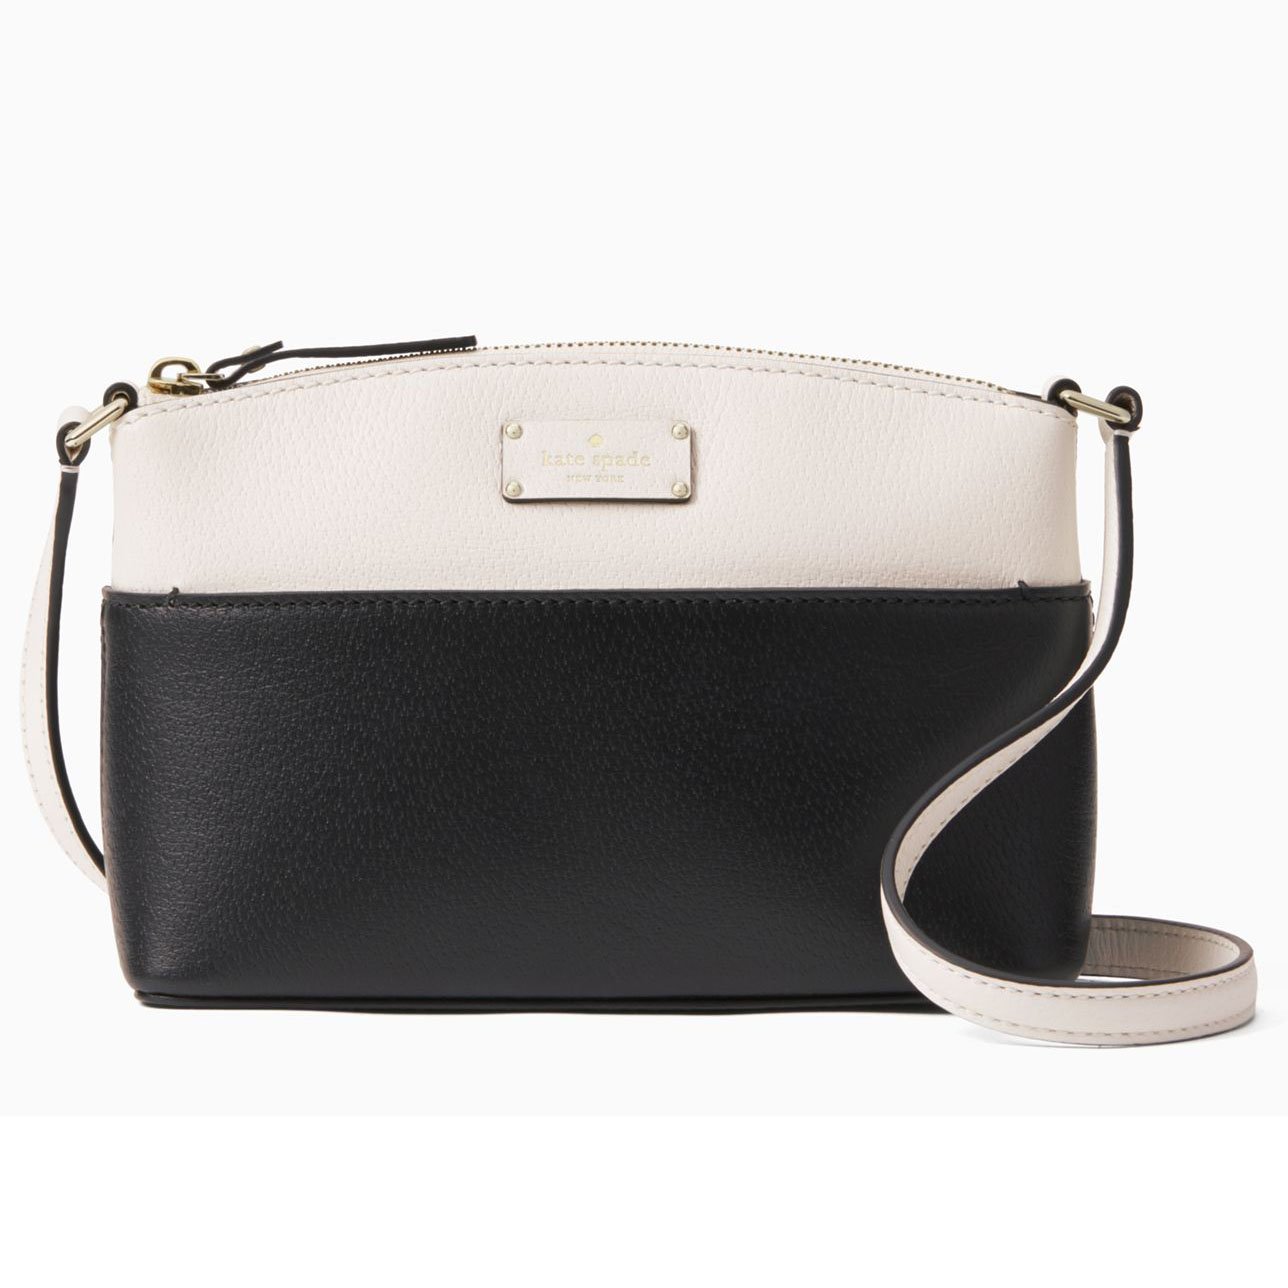 Kate Spade Grove Street Millie Crossbody Bag Black Cream # WKRU4194